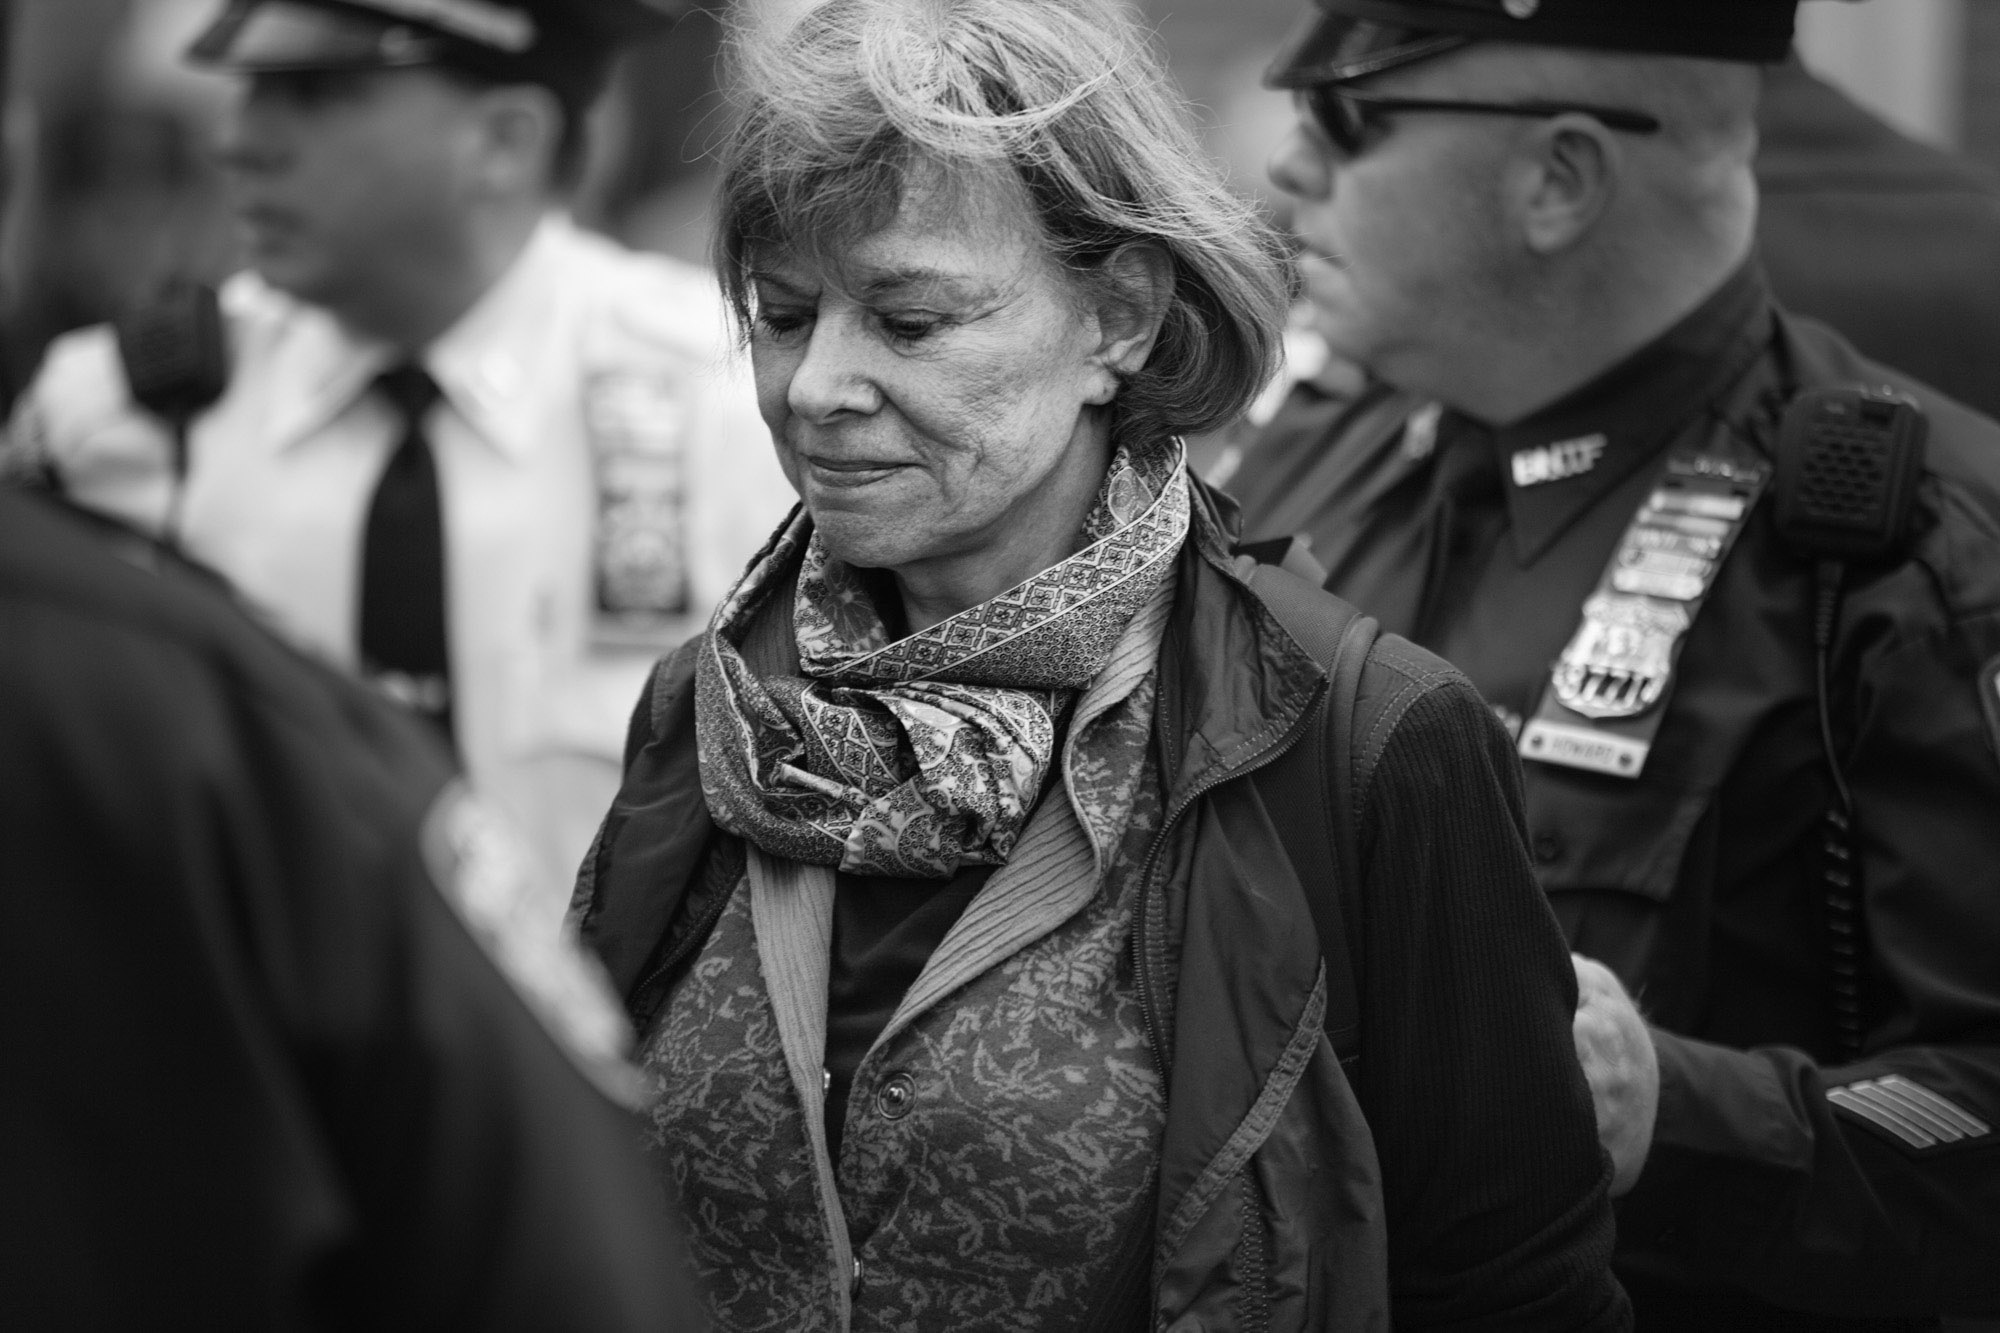 An OWS protestor is arrested and led away by police.